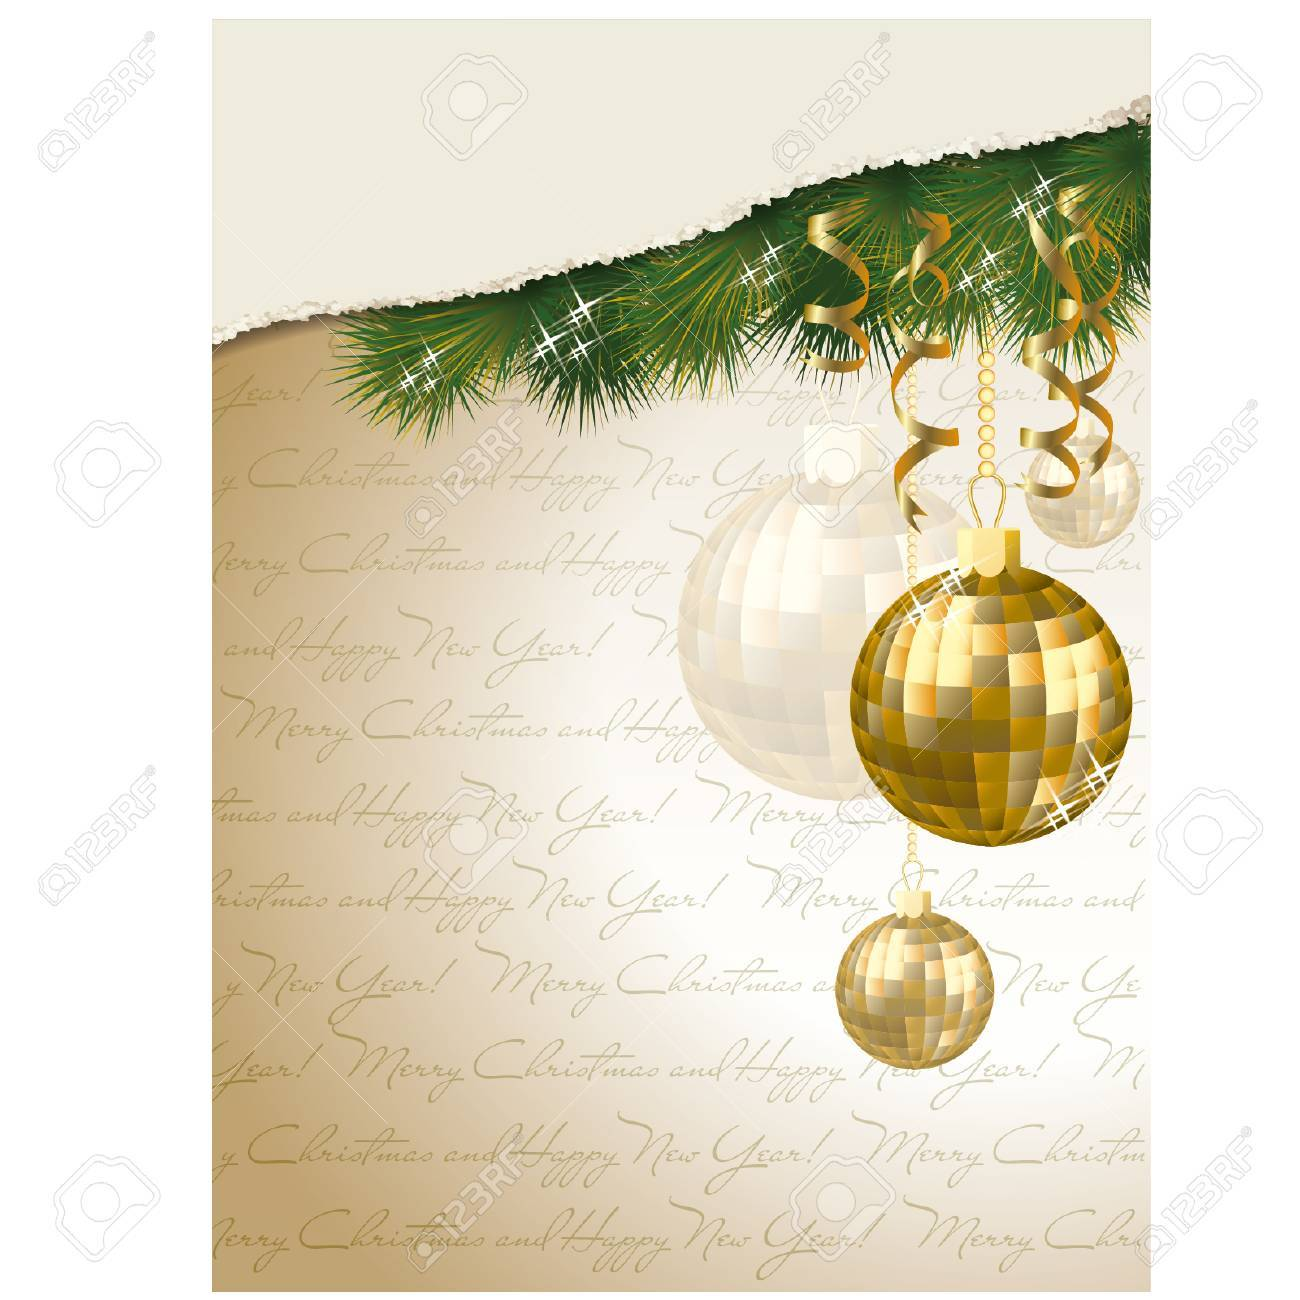 merry christmas and happy new year invitation card vector illustration stock vector 34249525